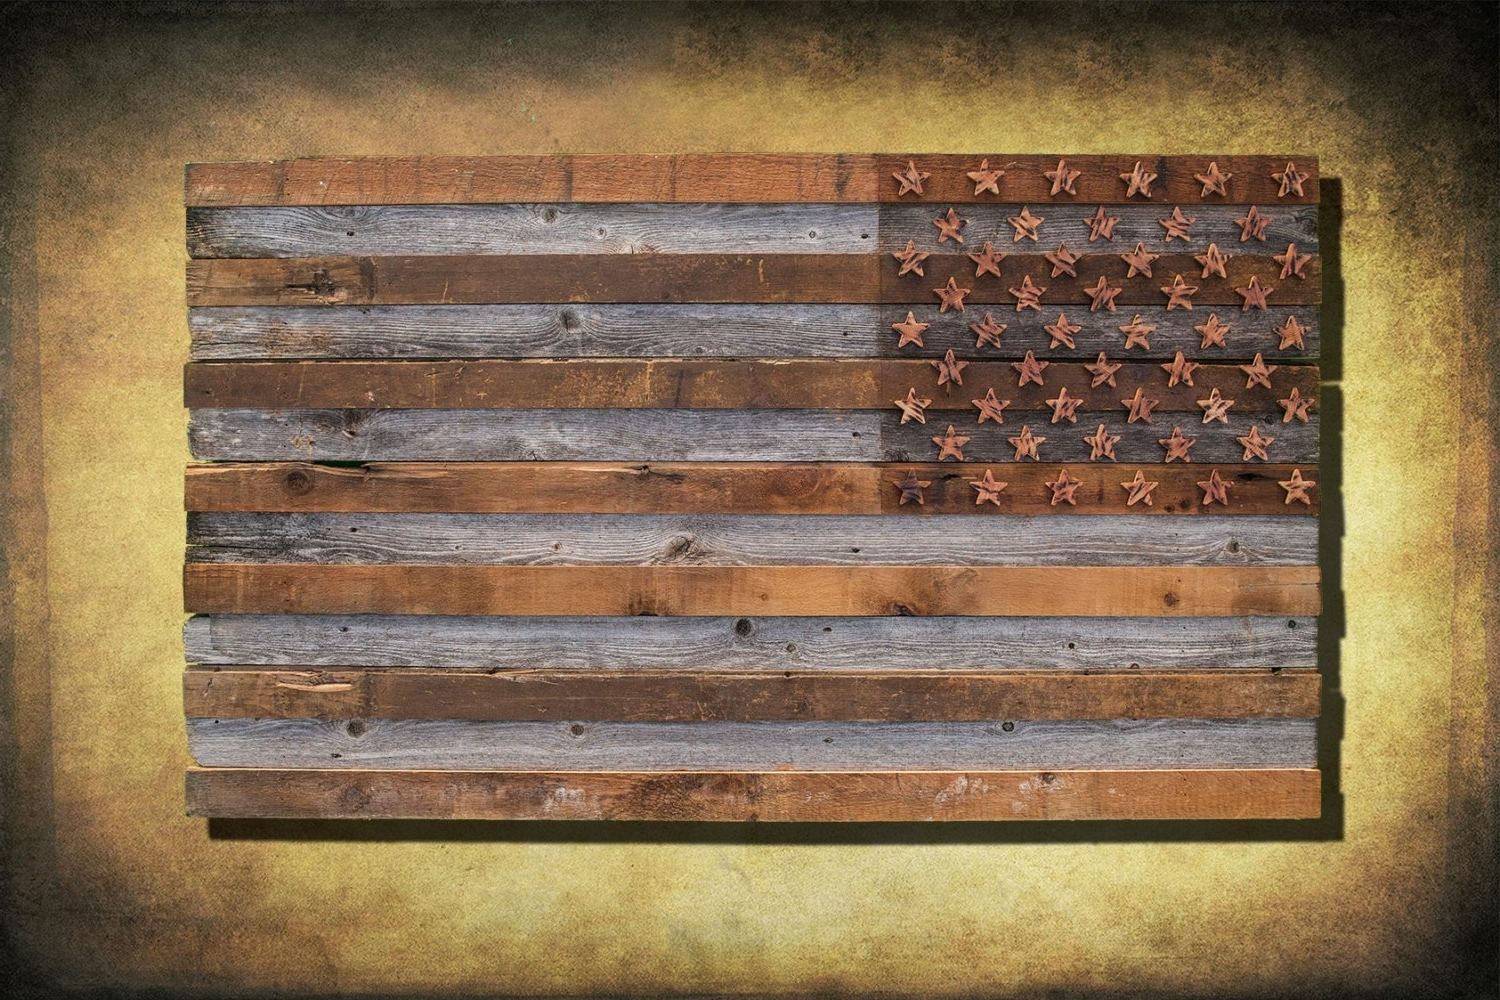 Famous Barnwood American Flag, 100 Year Old Wood, One Of A Kind, 3D, Wooden Pertaining To Vintage American Flag Wall Art (View 3 of 15)